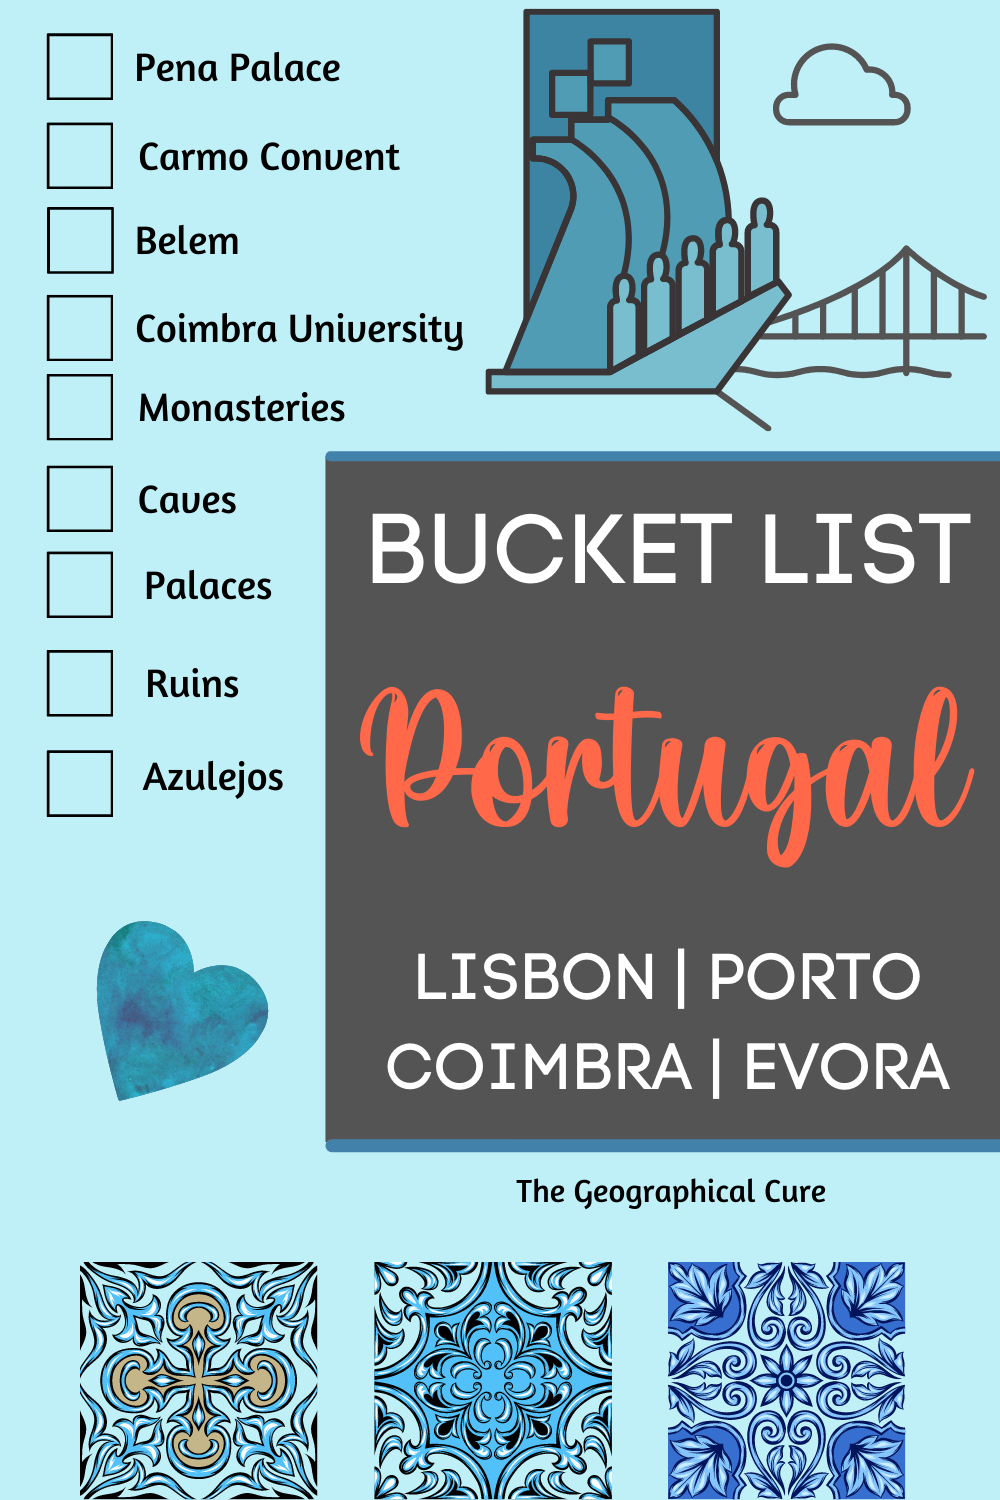 Bucket List Destinations and Historic Landmarks in Portugal